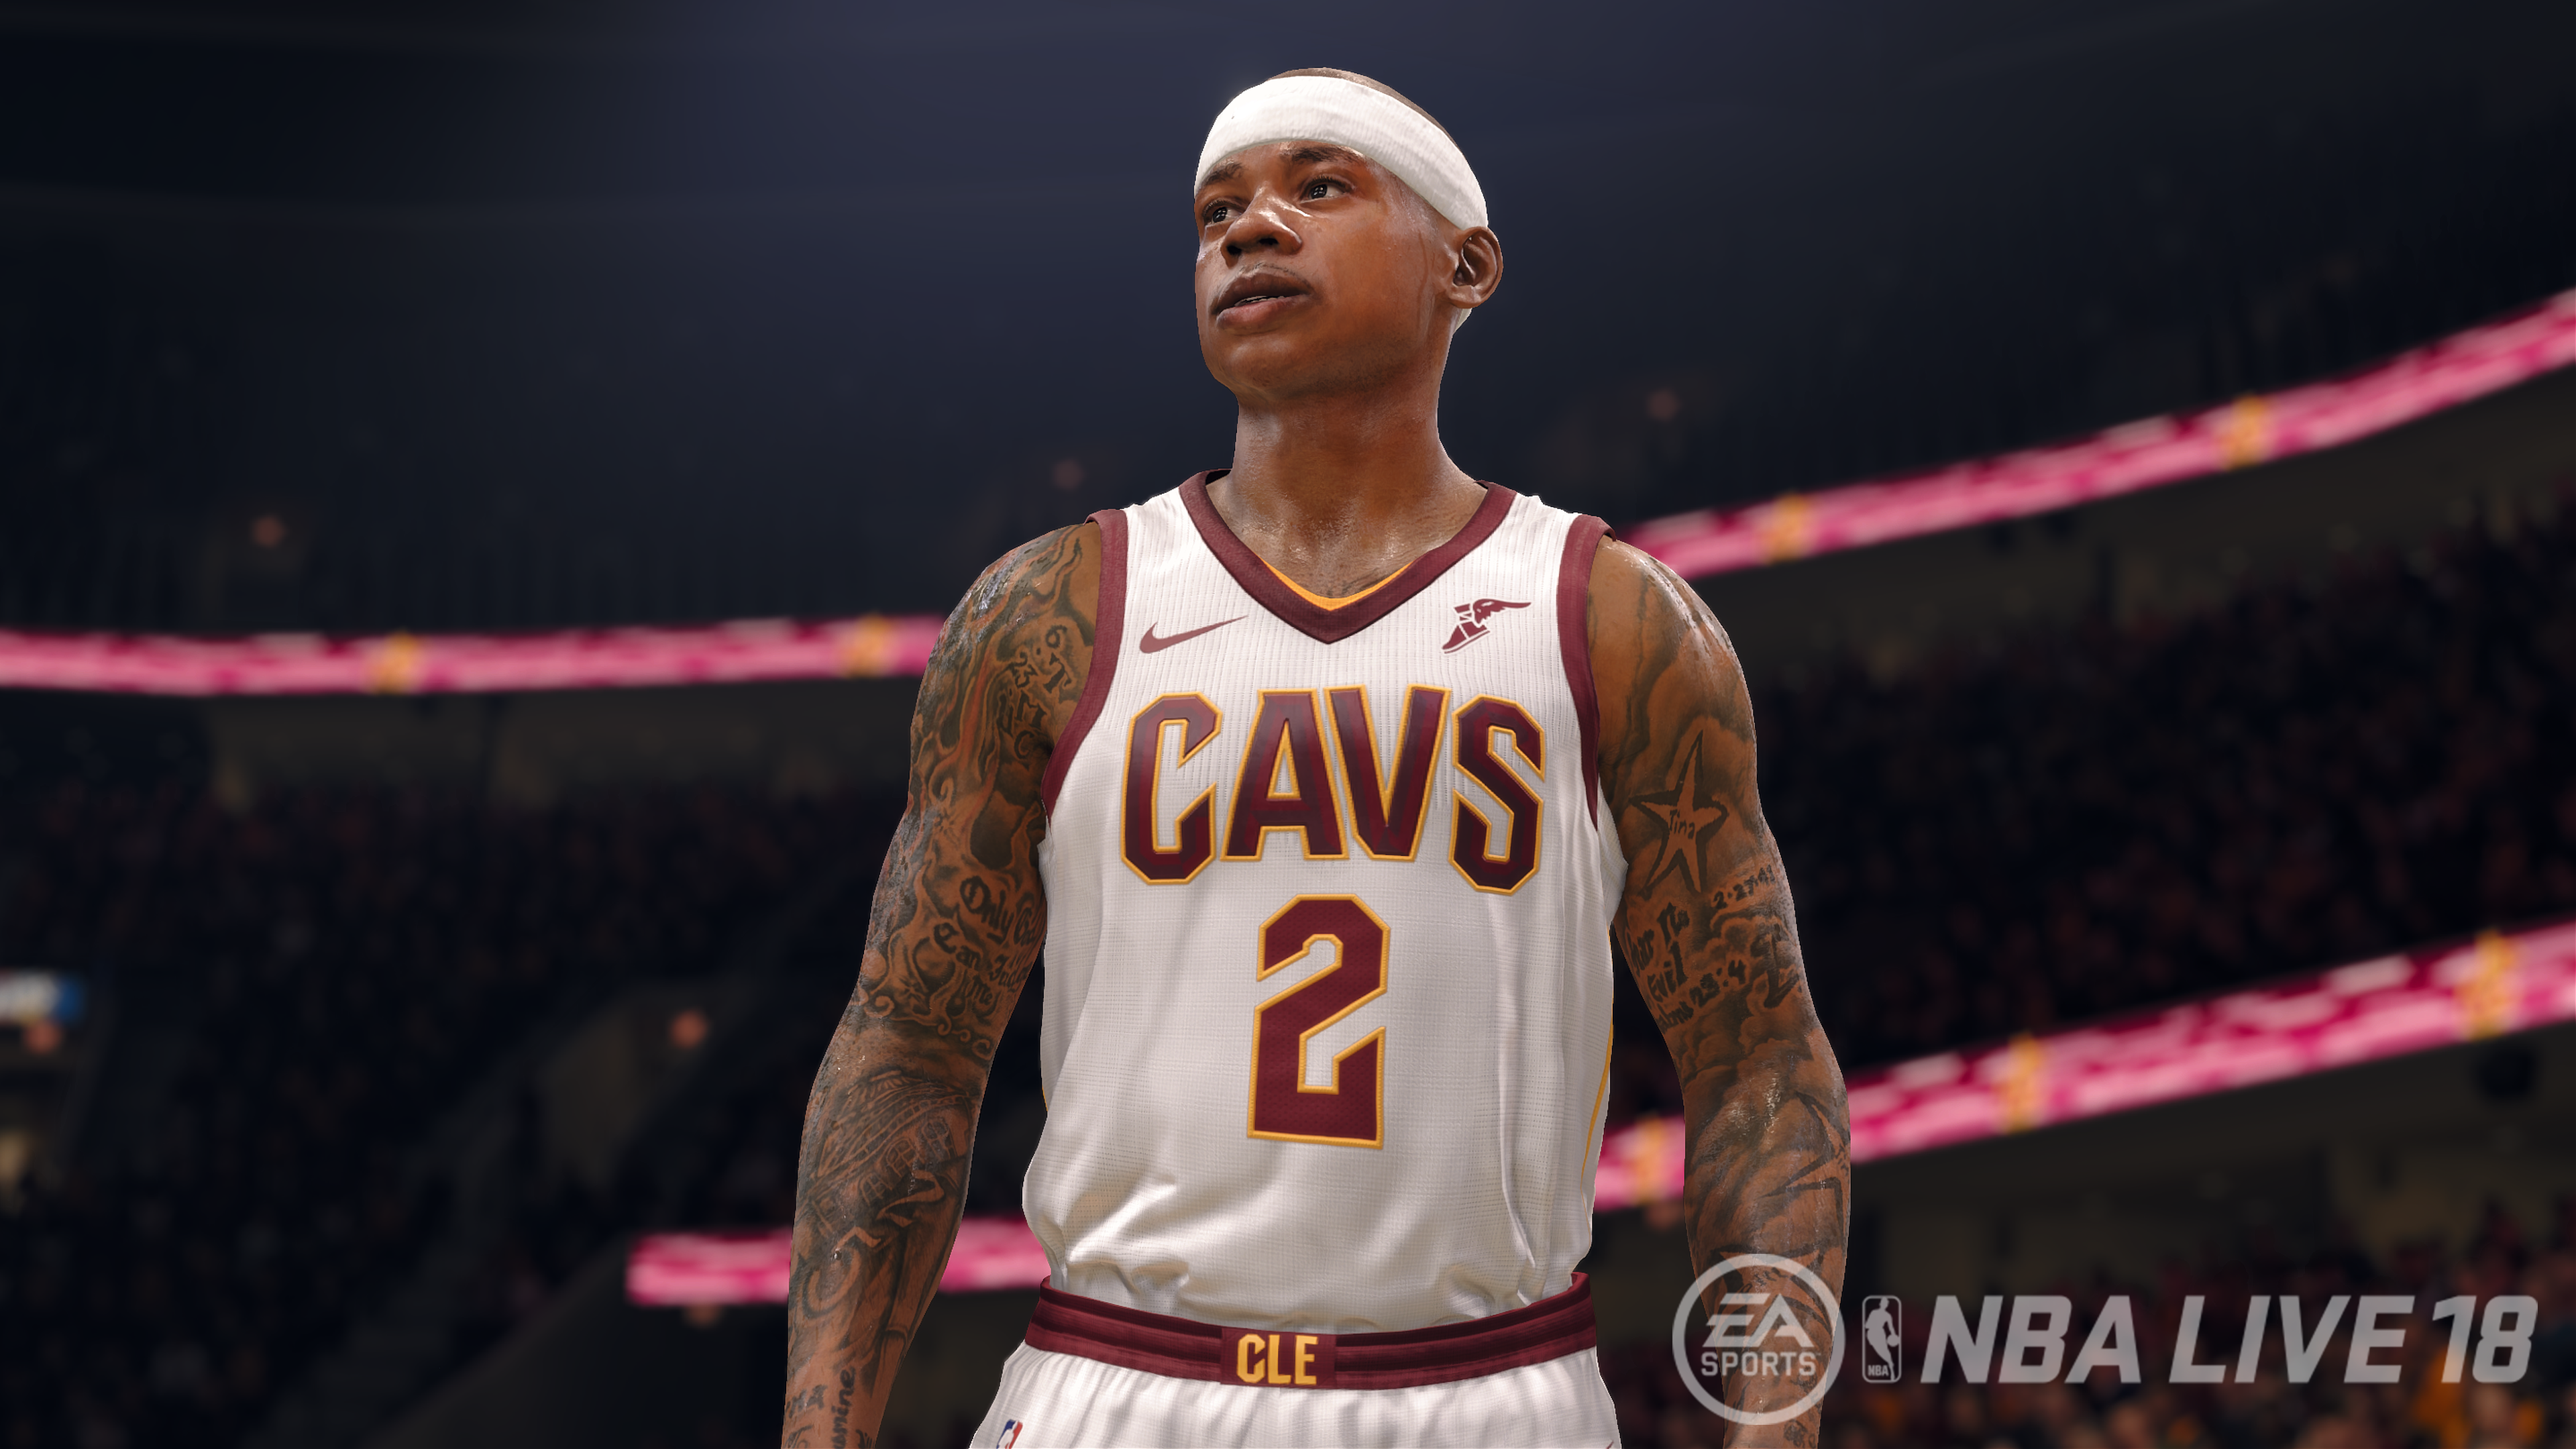 454eeec2a2e Isaiah Thomas in the Wine and Gold with NBA Live 18 s Demo - GameSpace.com